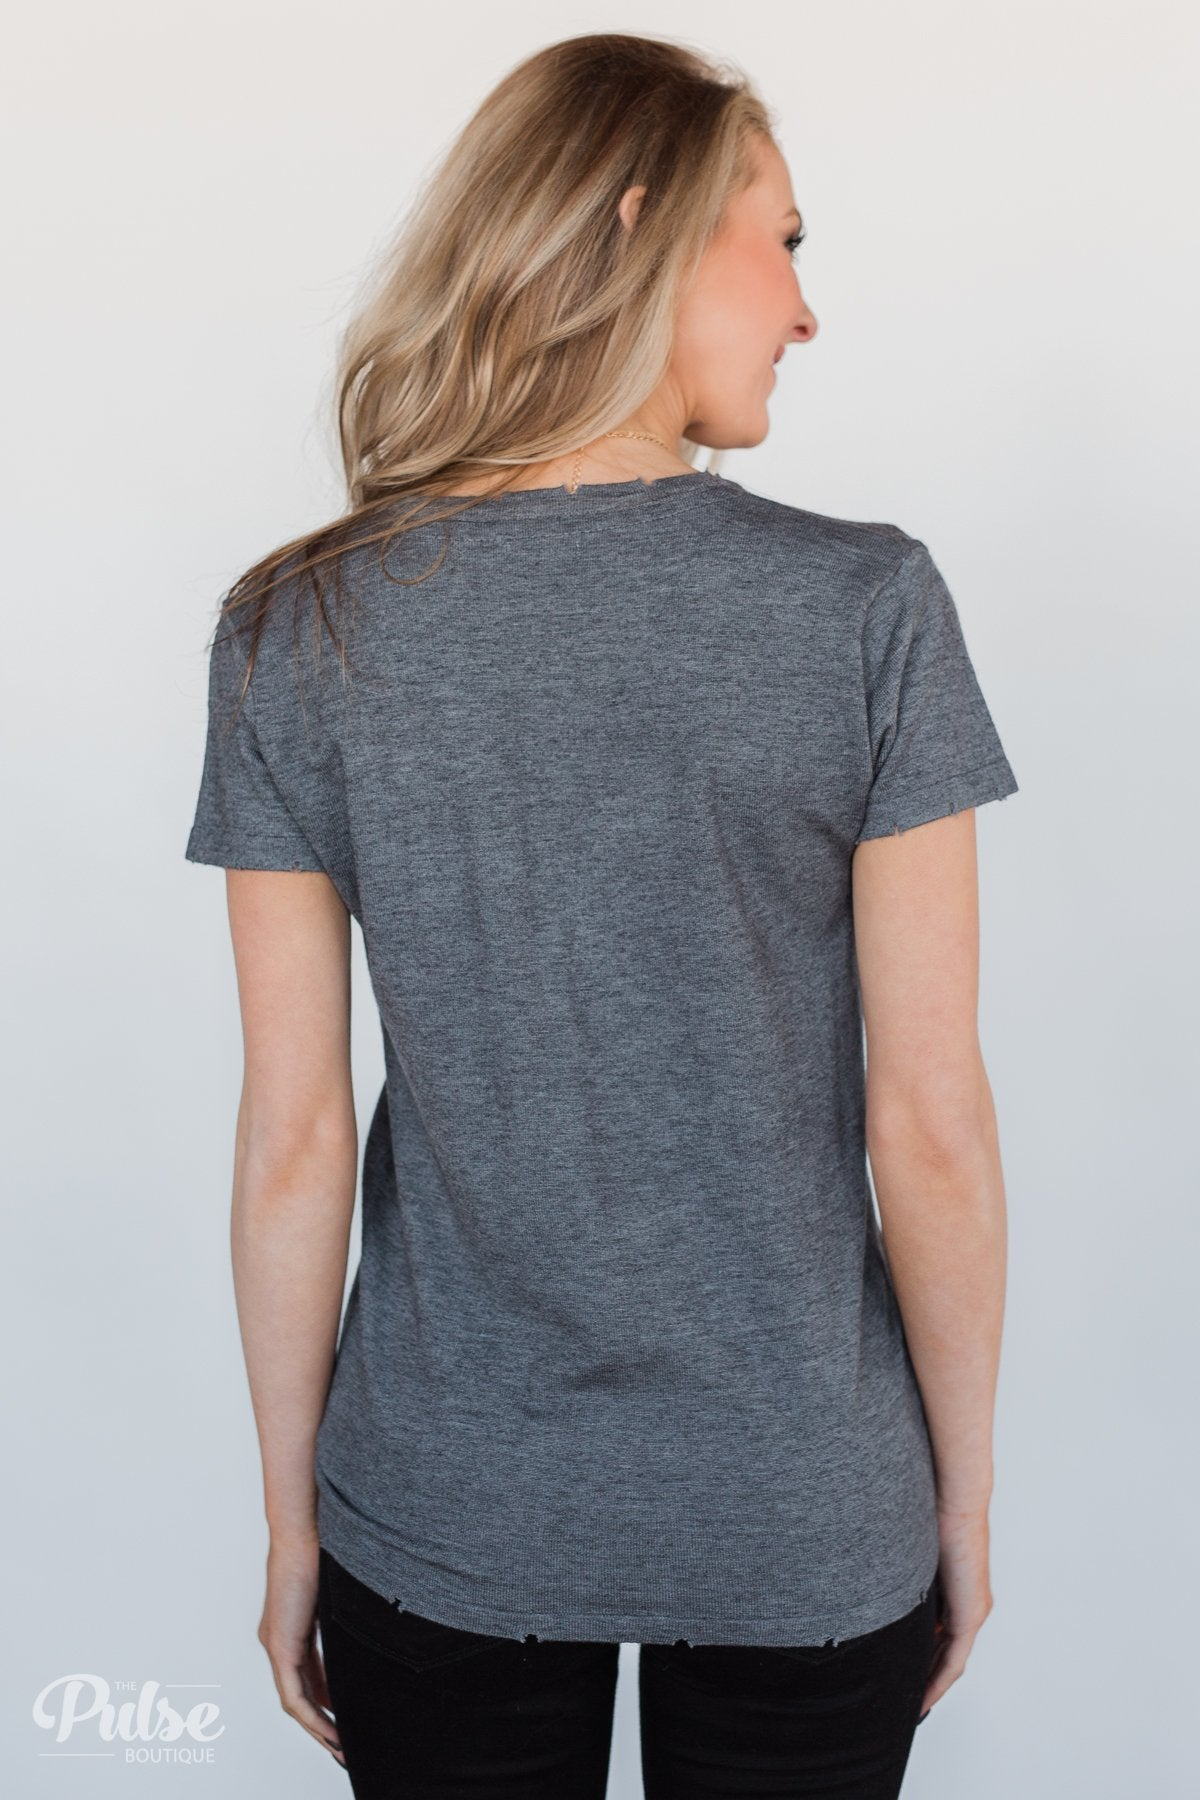 Eyes On You Distressed Short Sleeve Top- Charcoal